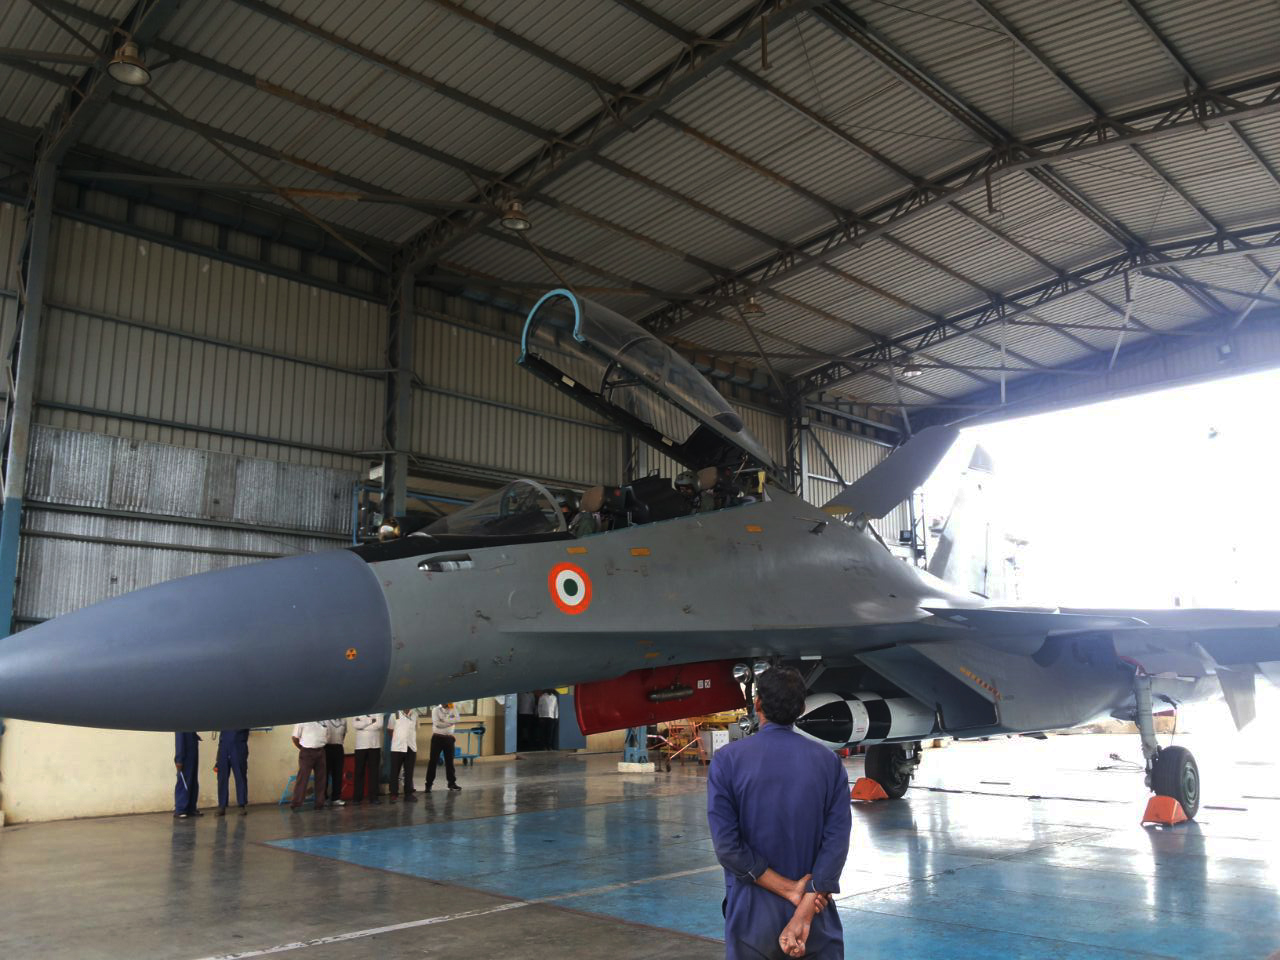 SU-30MKI with BRAHMOS missile before takeoff